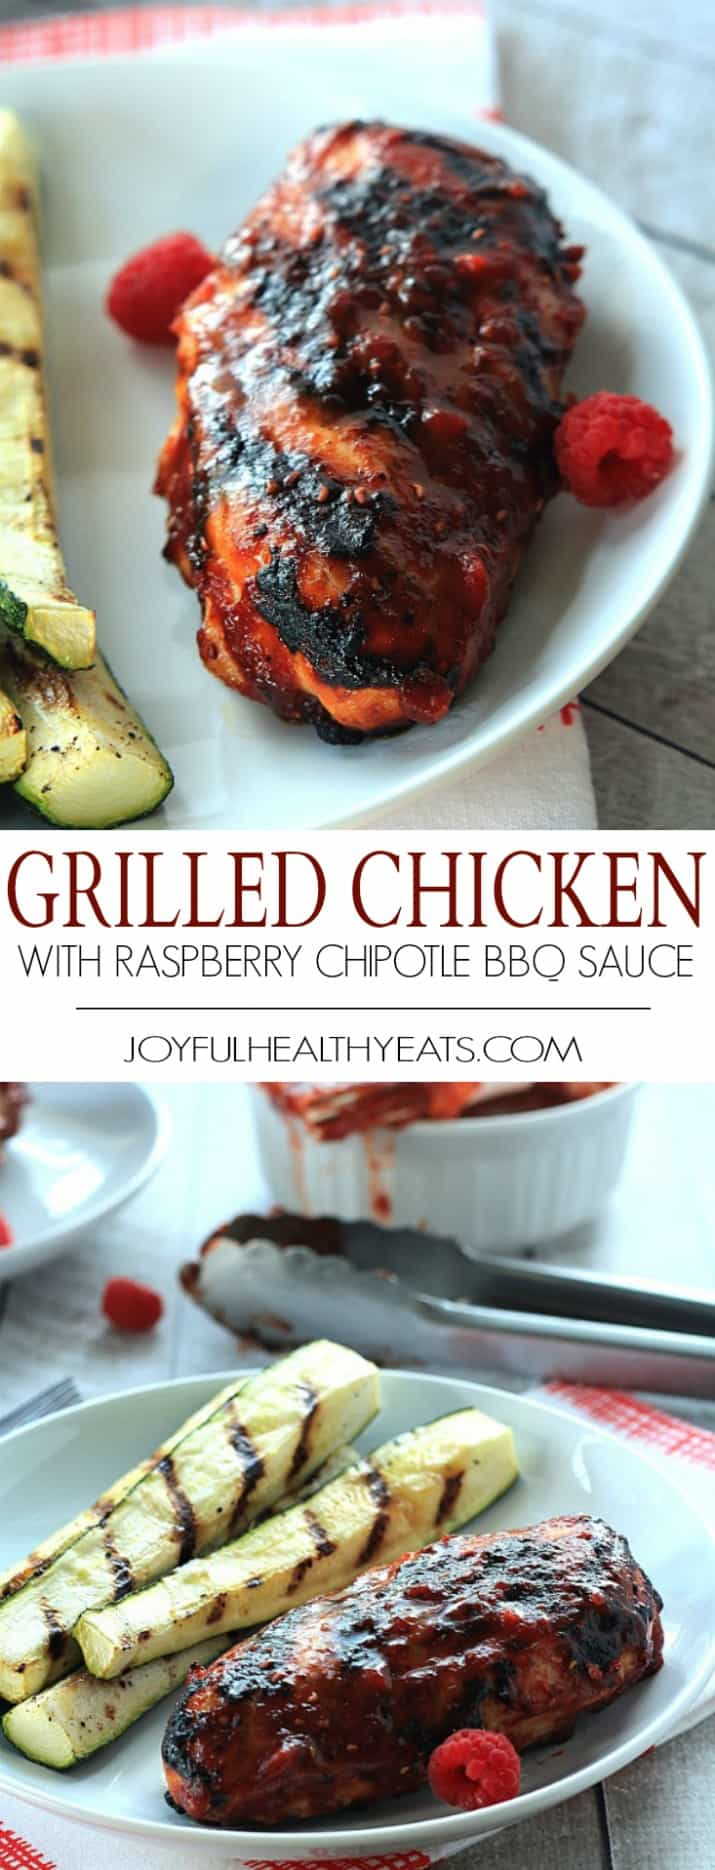 The ultimate grilled dinner in less than 30 minutes! Grilled Chicken Breast with a homemade Raspberry Chipotle BBQ Sauce | joyfulhealthyeats.com #recipes